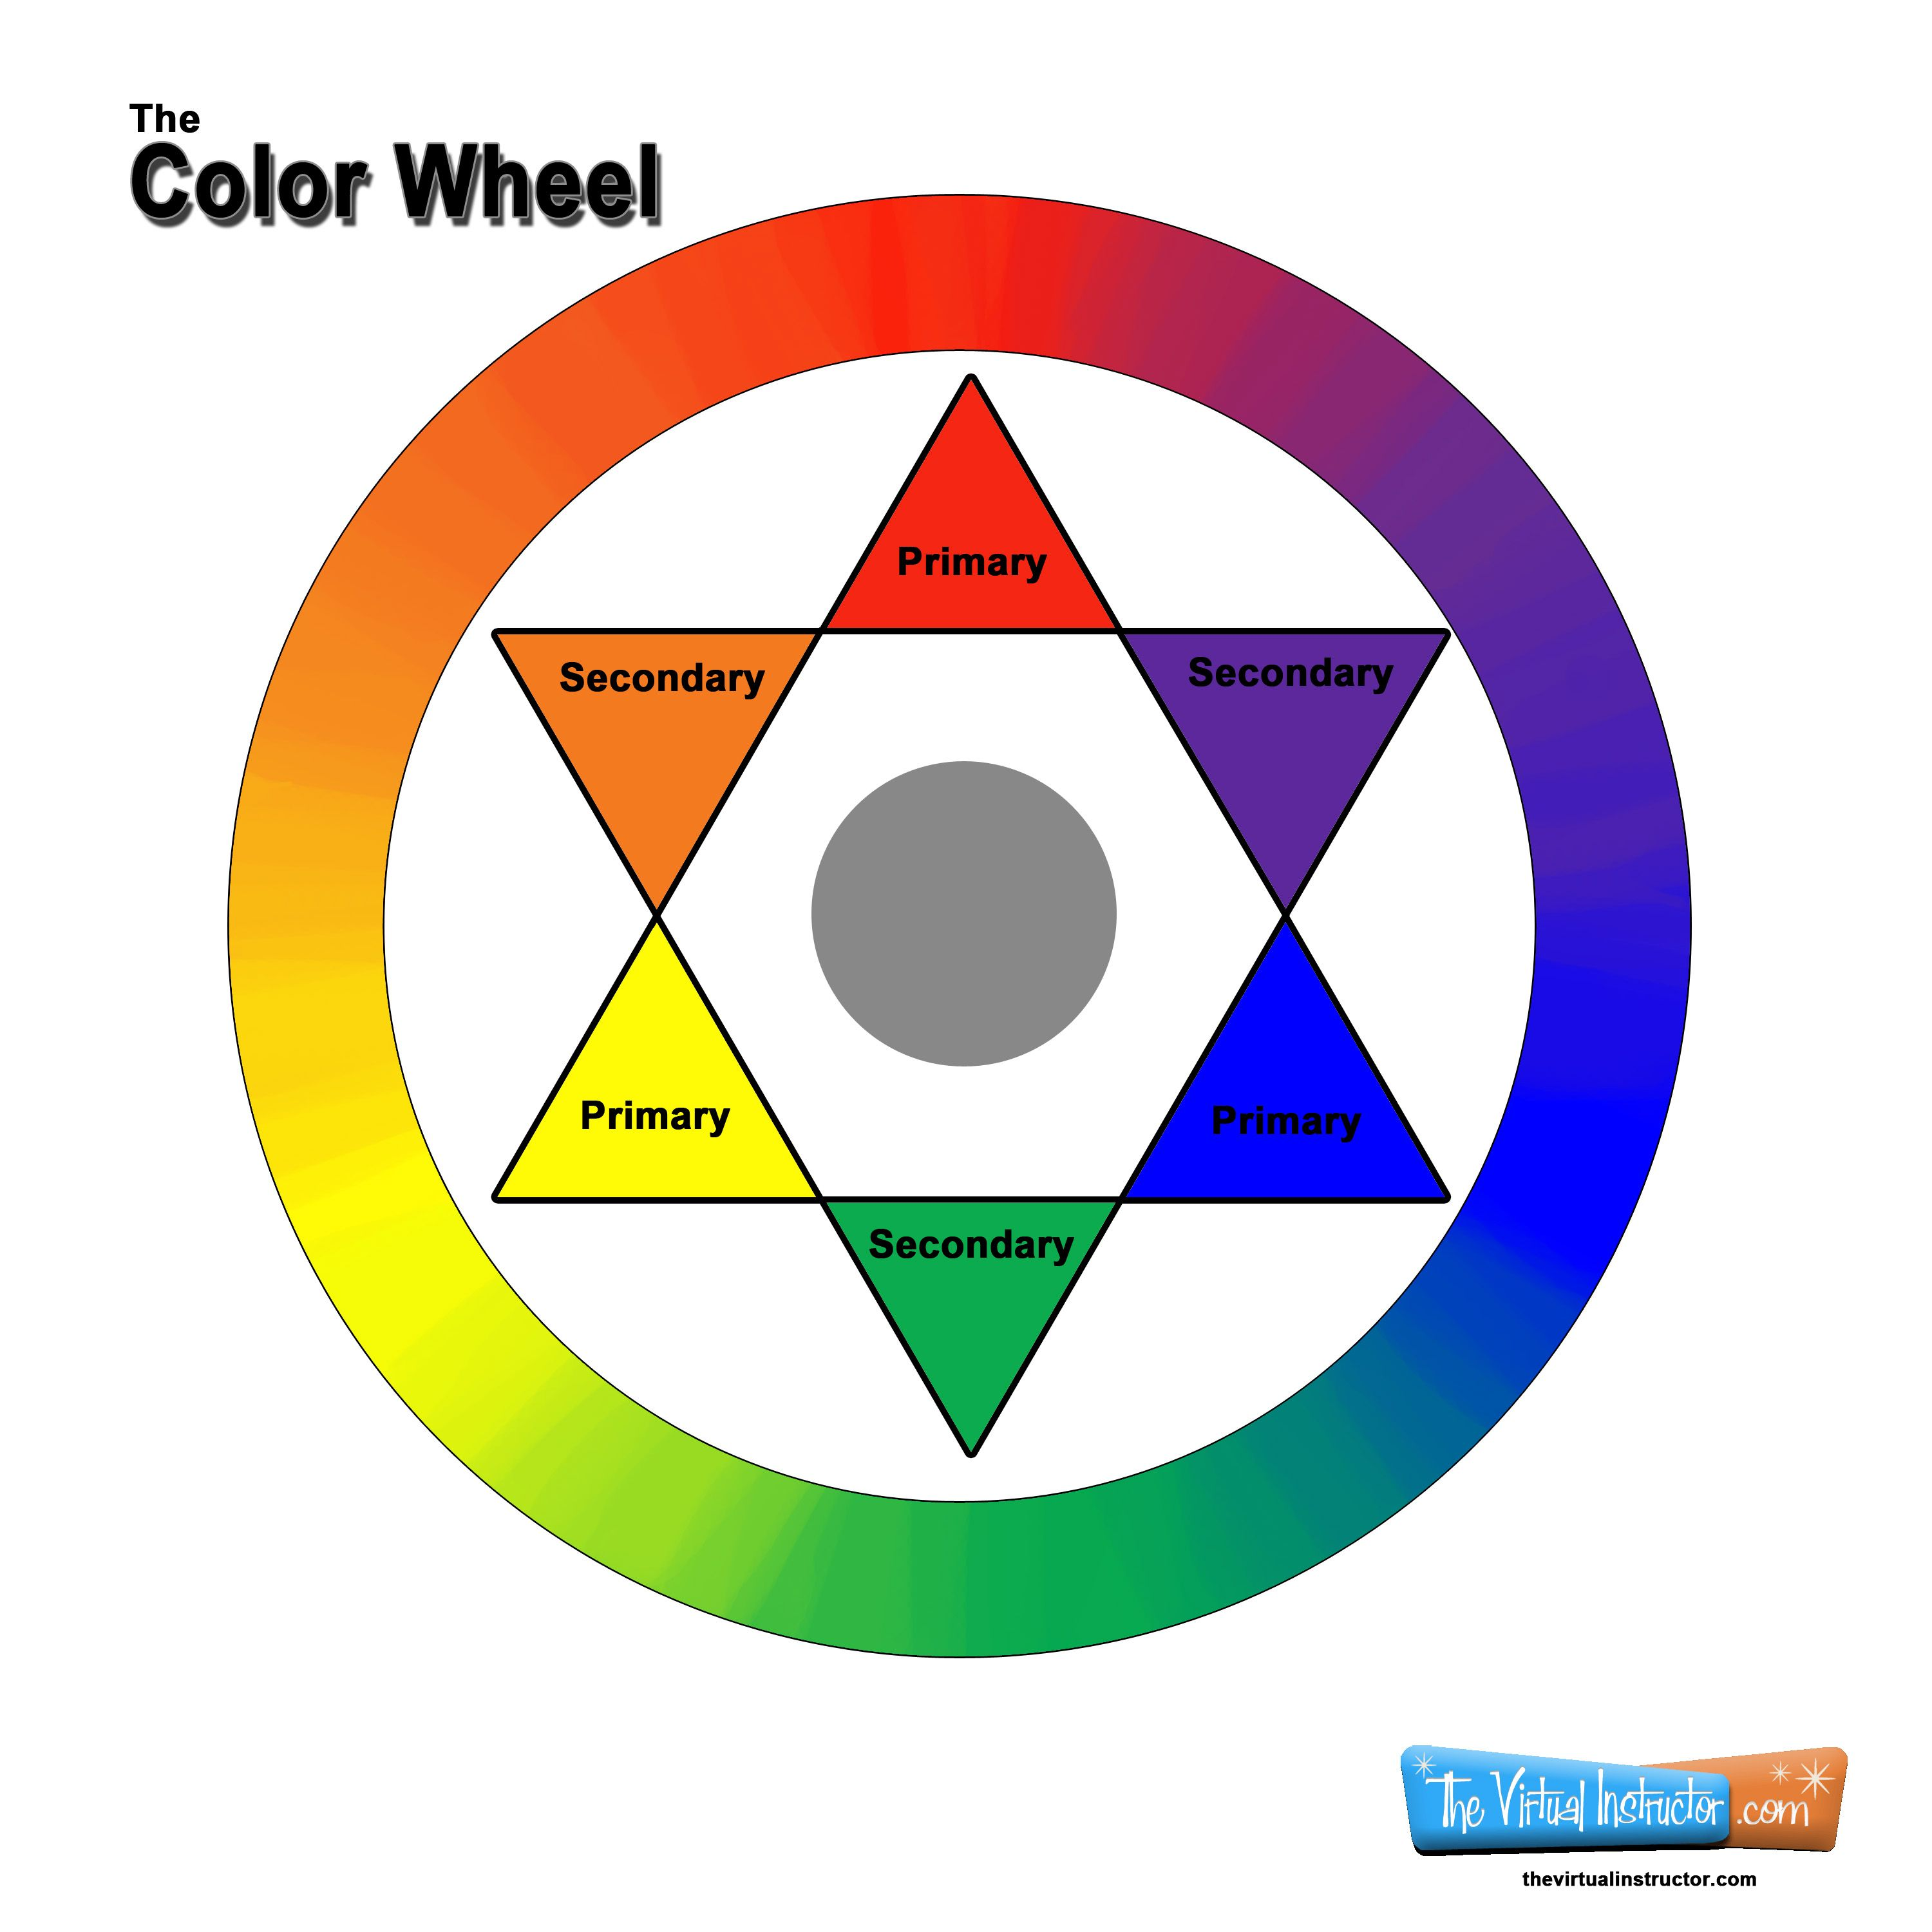 Color wheel art projects for kids - High Resolution Image Home Design Ideas Color Wheel Color Wheel Chart For Teachers And Students Printable Color Wheel Color Codes Color Wheel Orange